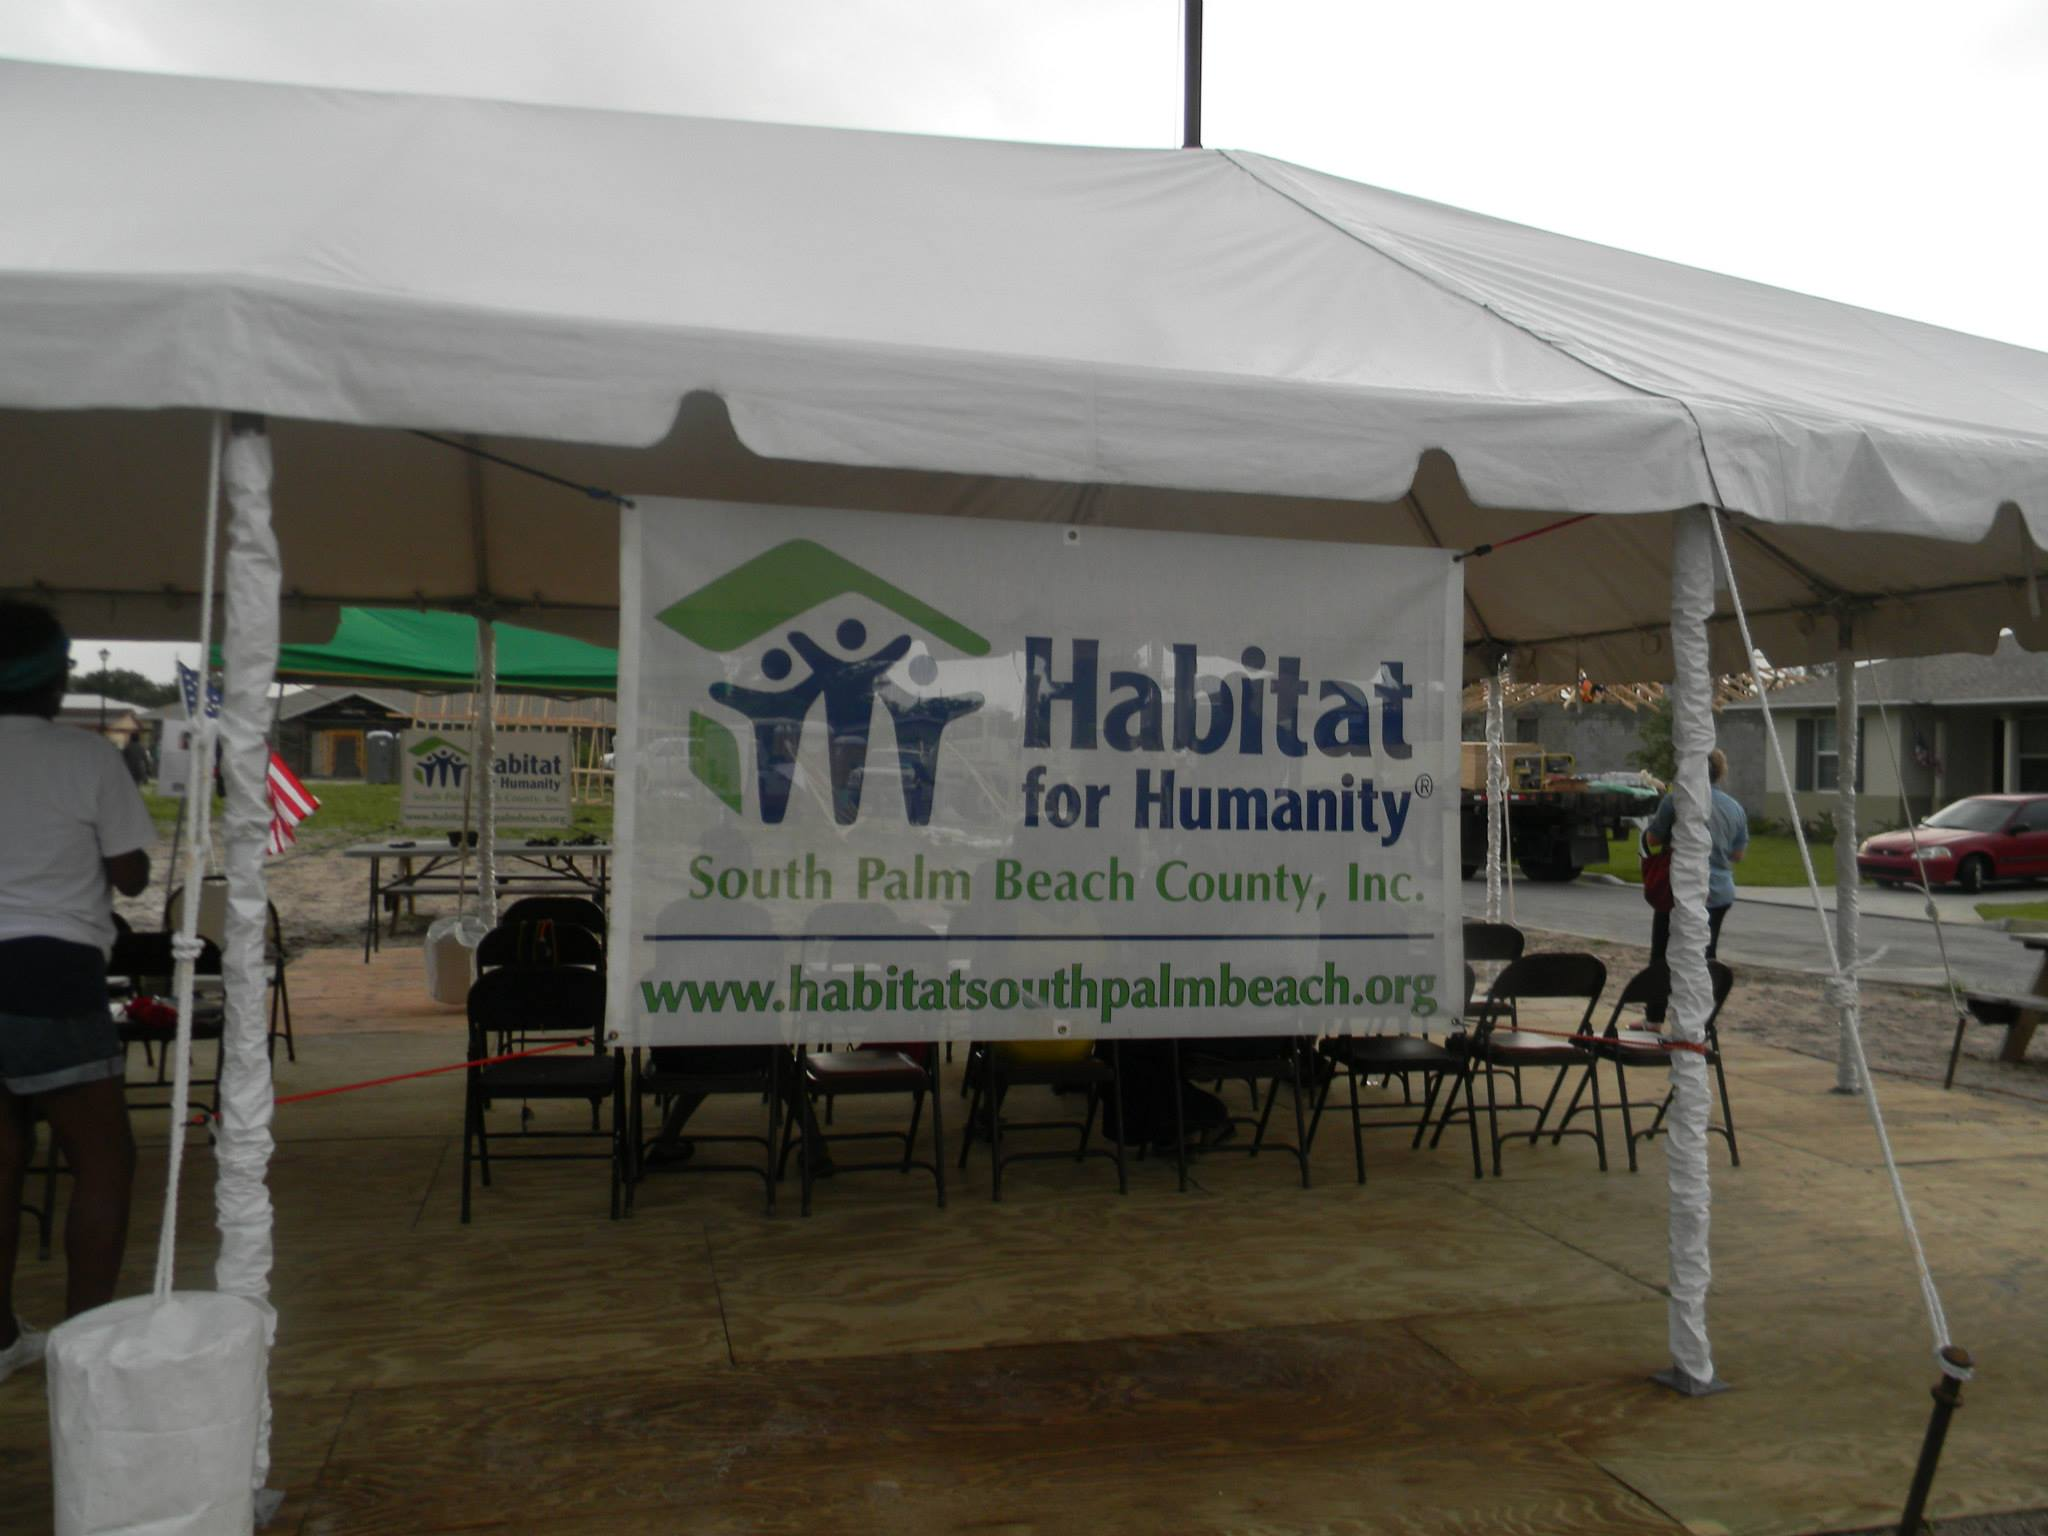 Habitat for Humanity South Palm Beach